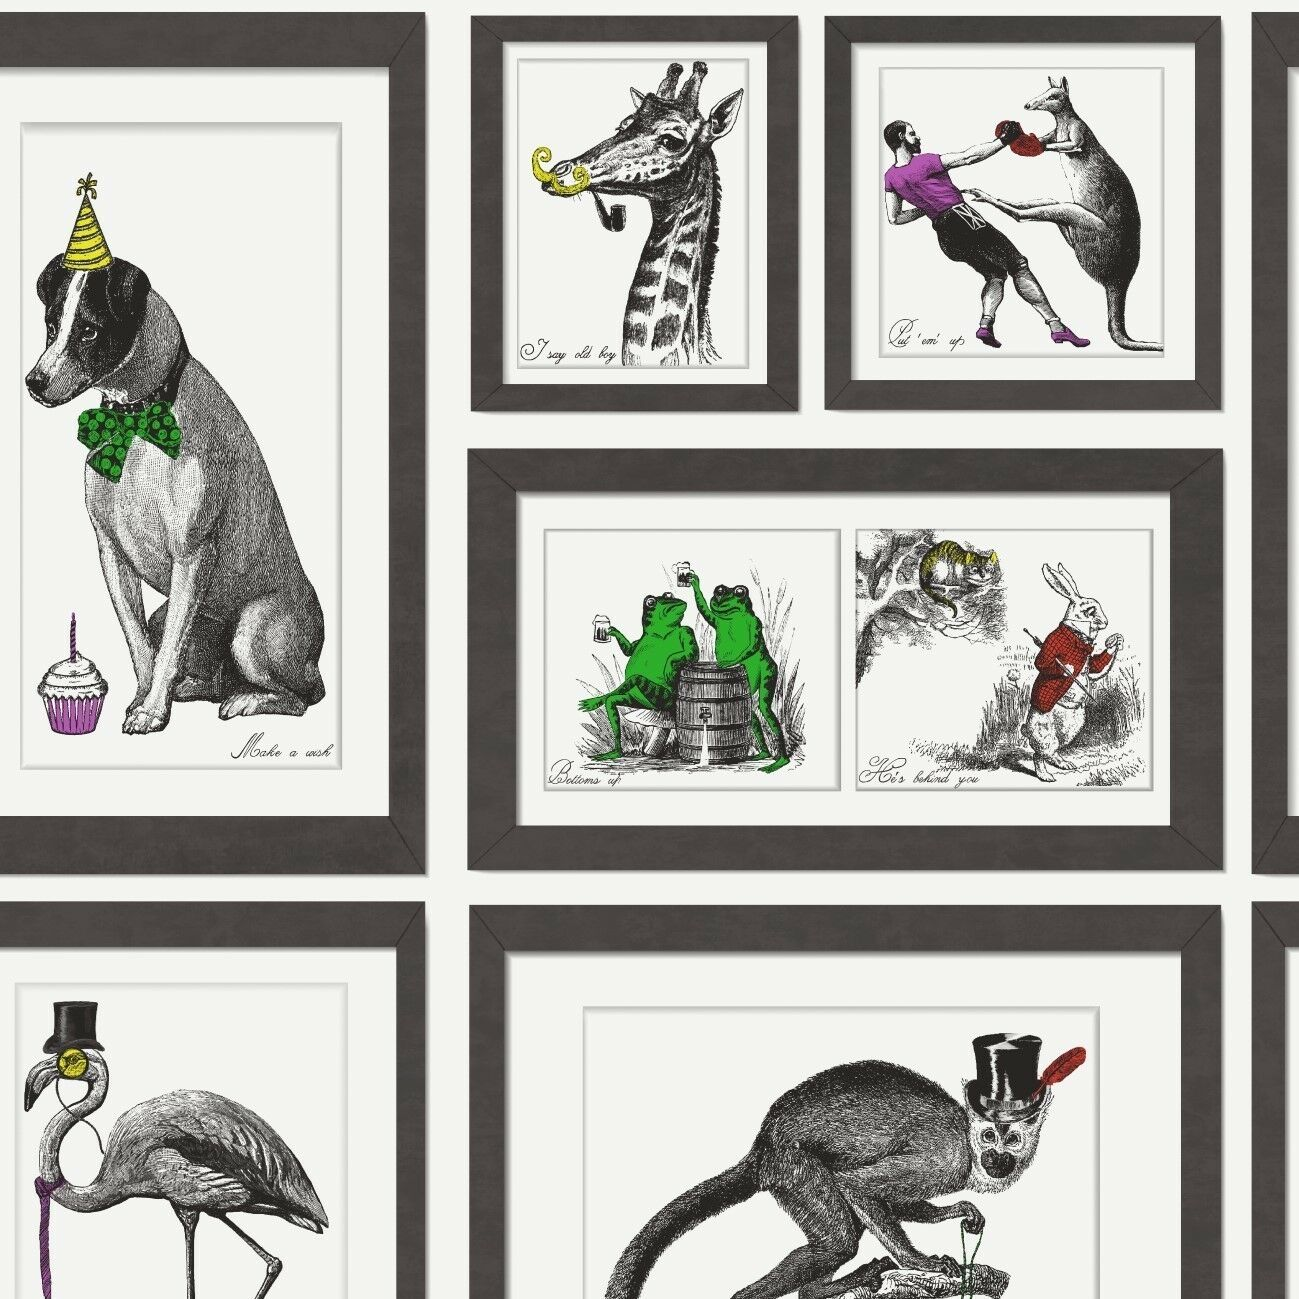 STATEMENT MAD DOGS Multi Feature Frames Wallpaper 97921 - £12.99 ...